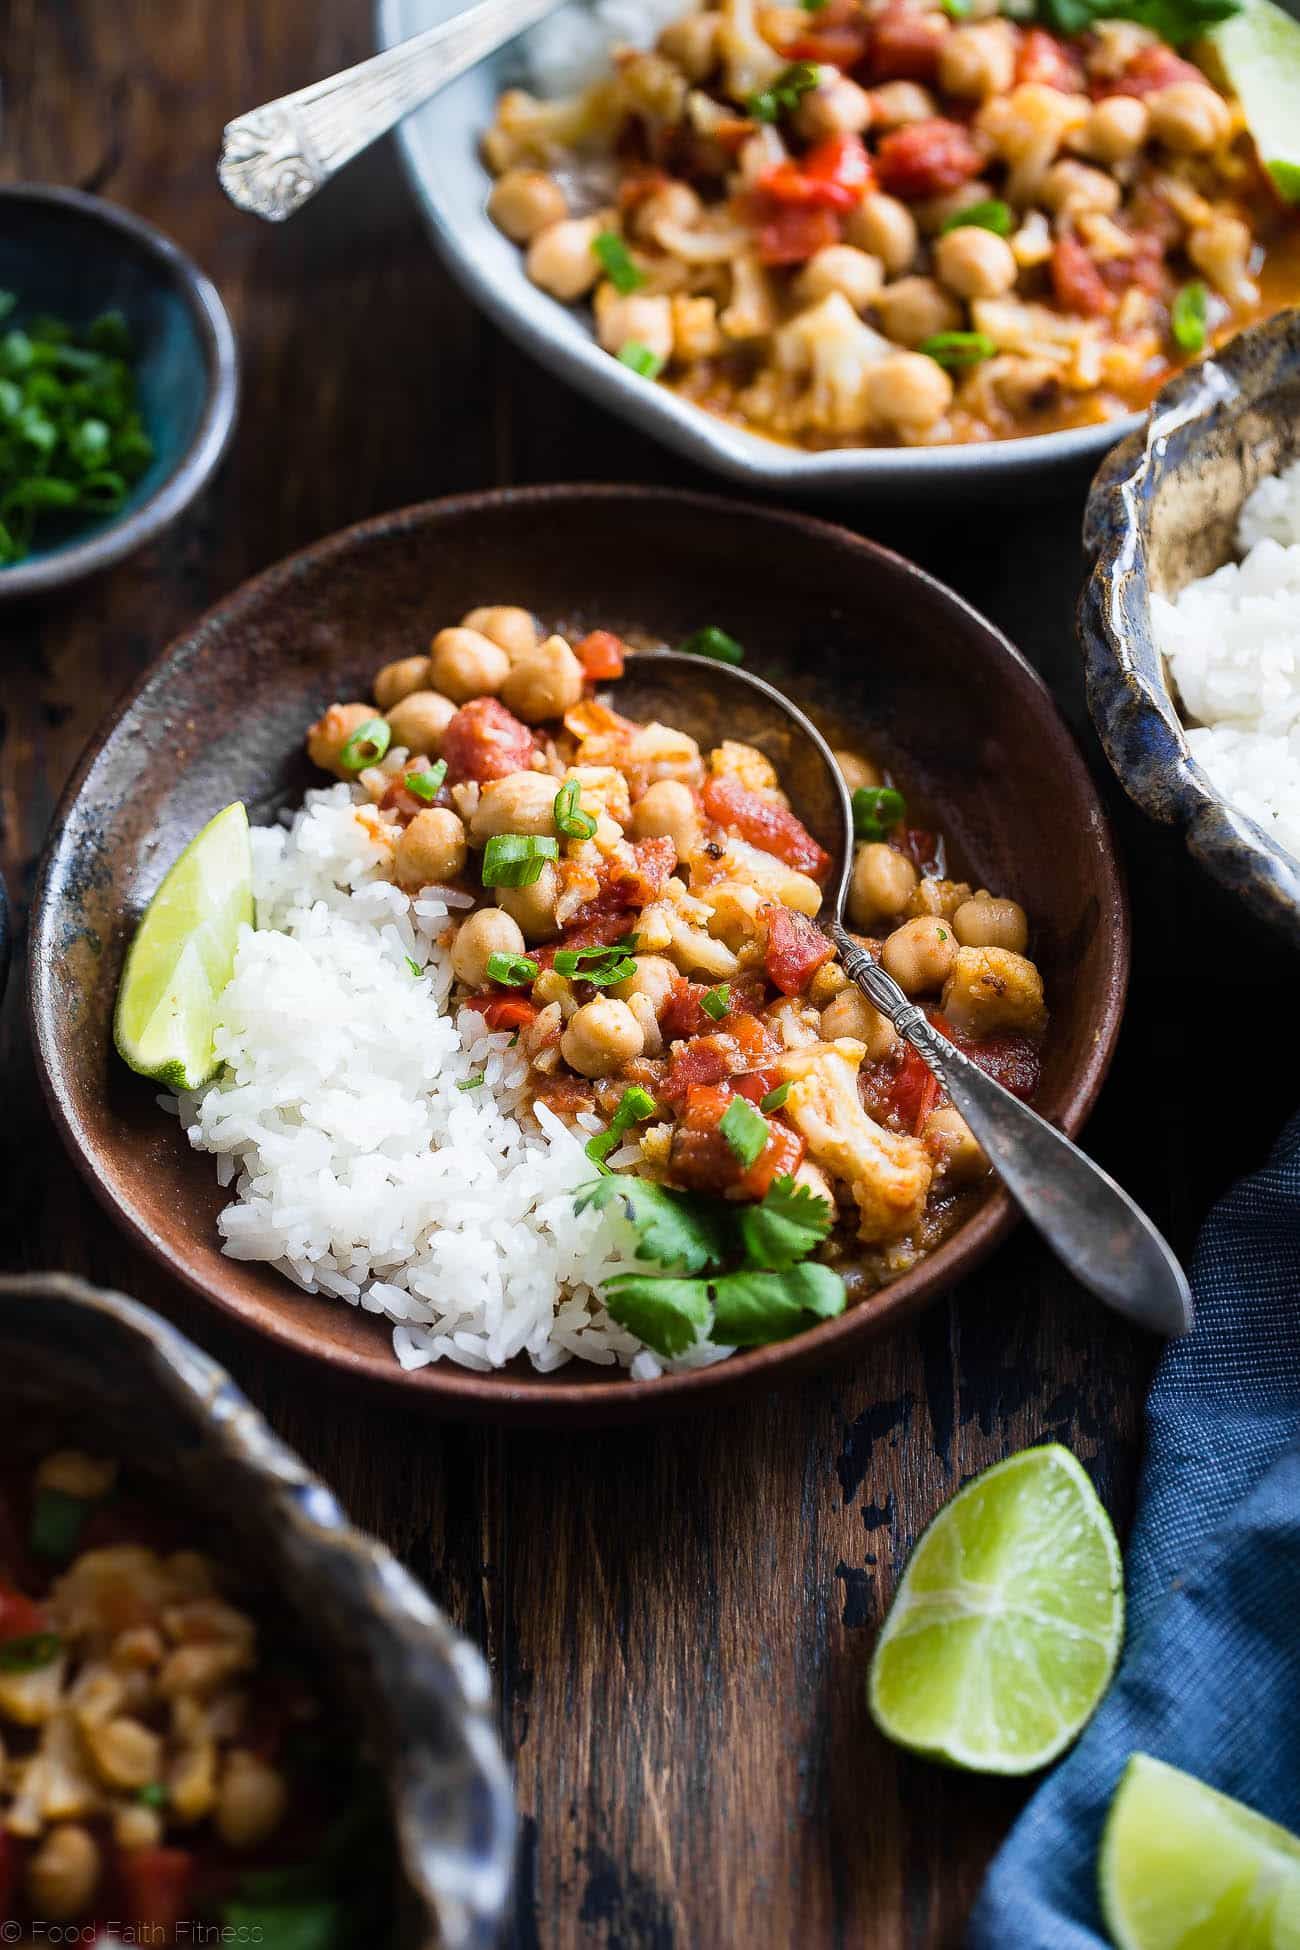 Instant Pot Vegan Chickpea Curry - This easy chickpea curry recipe is made in the Instant Pot and ready in 20 mins! It uses coconut milk and tomatoes to make it thick and so creamy! Makes great leftovers and is great for meal prep! | Foodfaithfitness.com | @FoodFaithFit